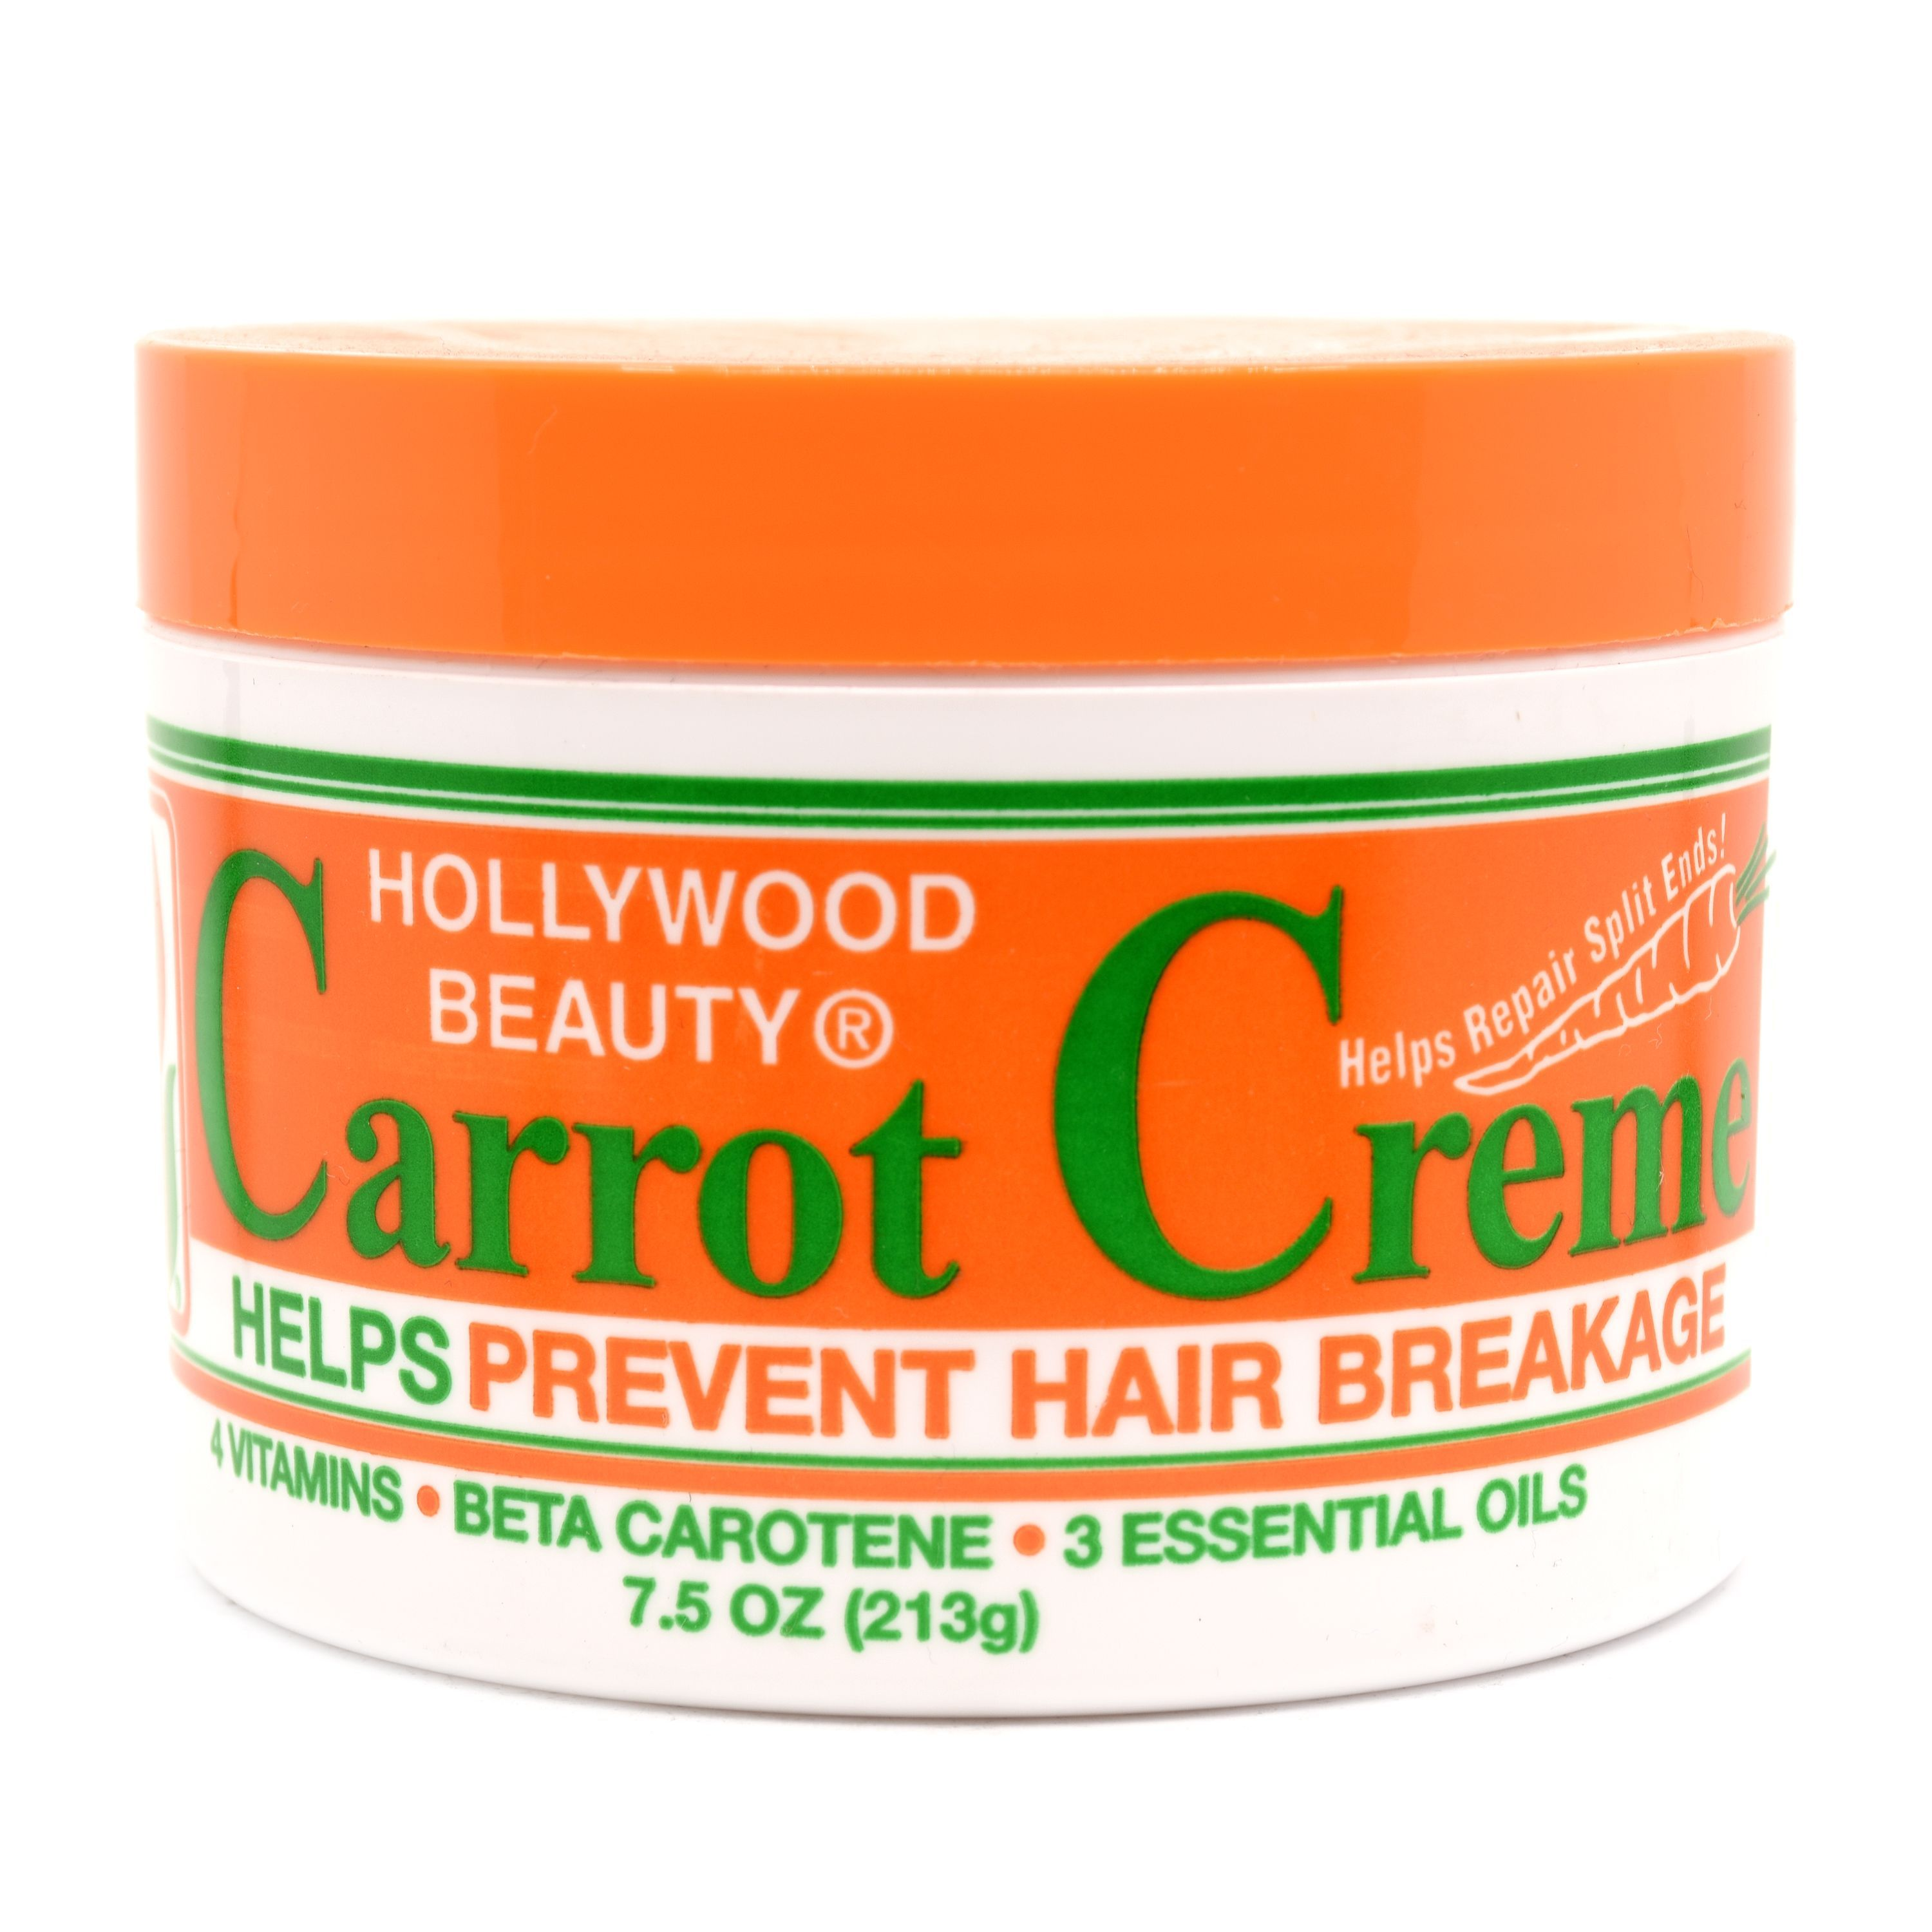 Hollywood Beauty Carrot Creme - 7.5oz